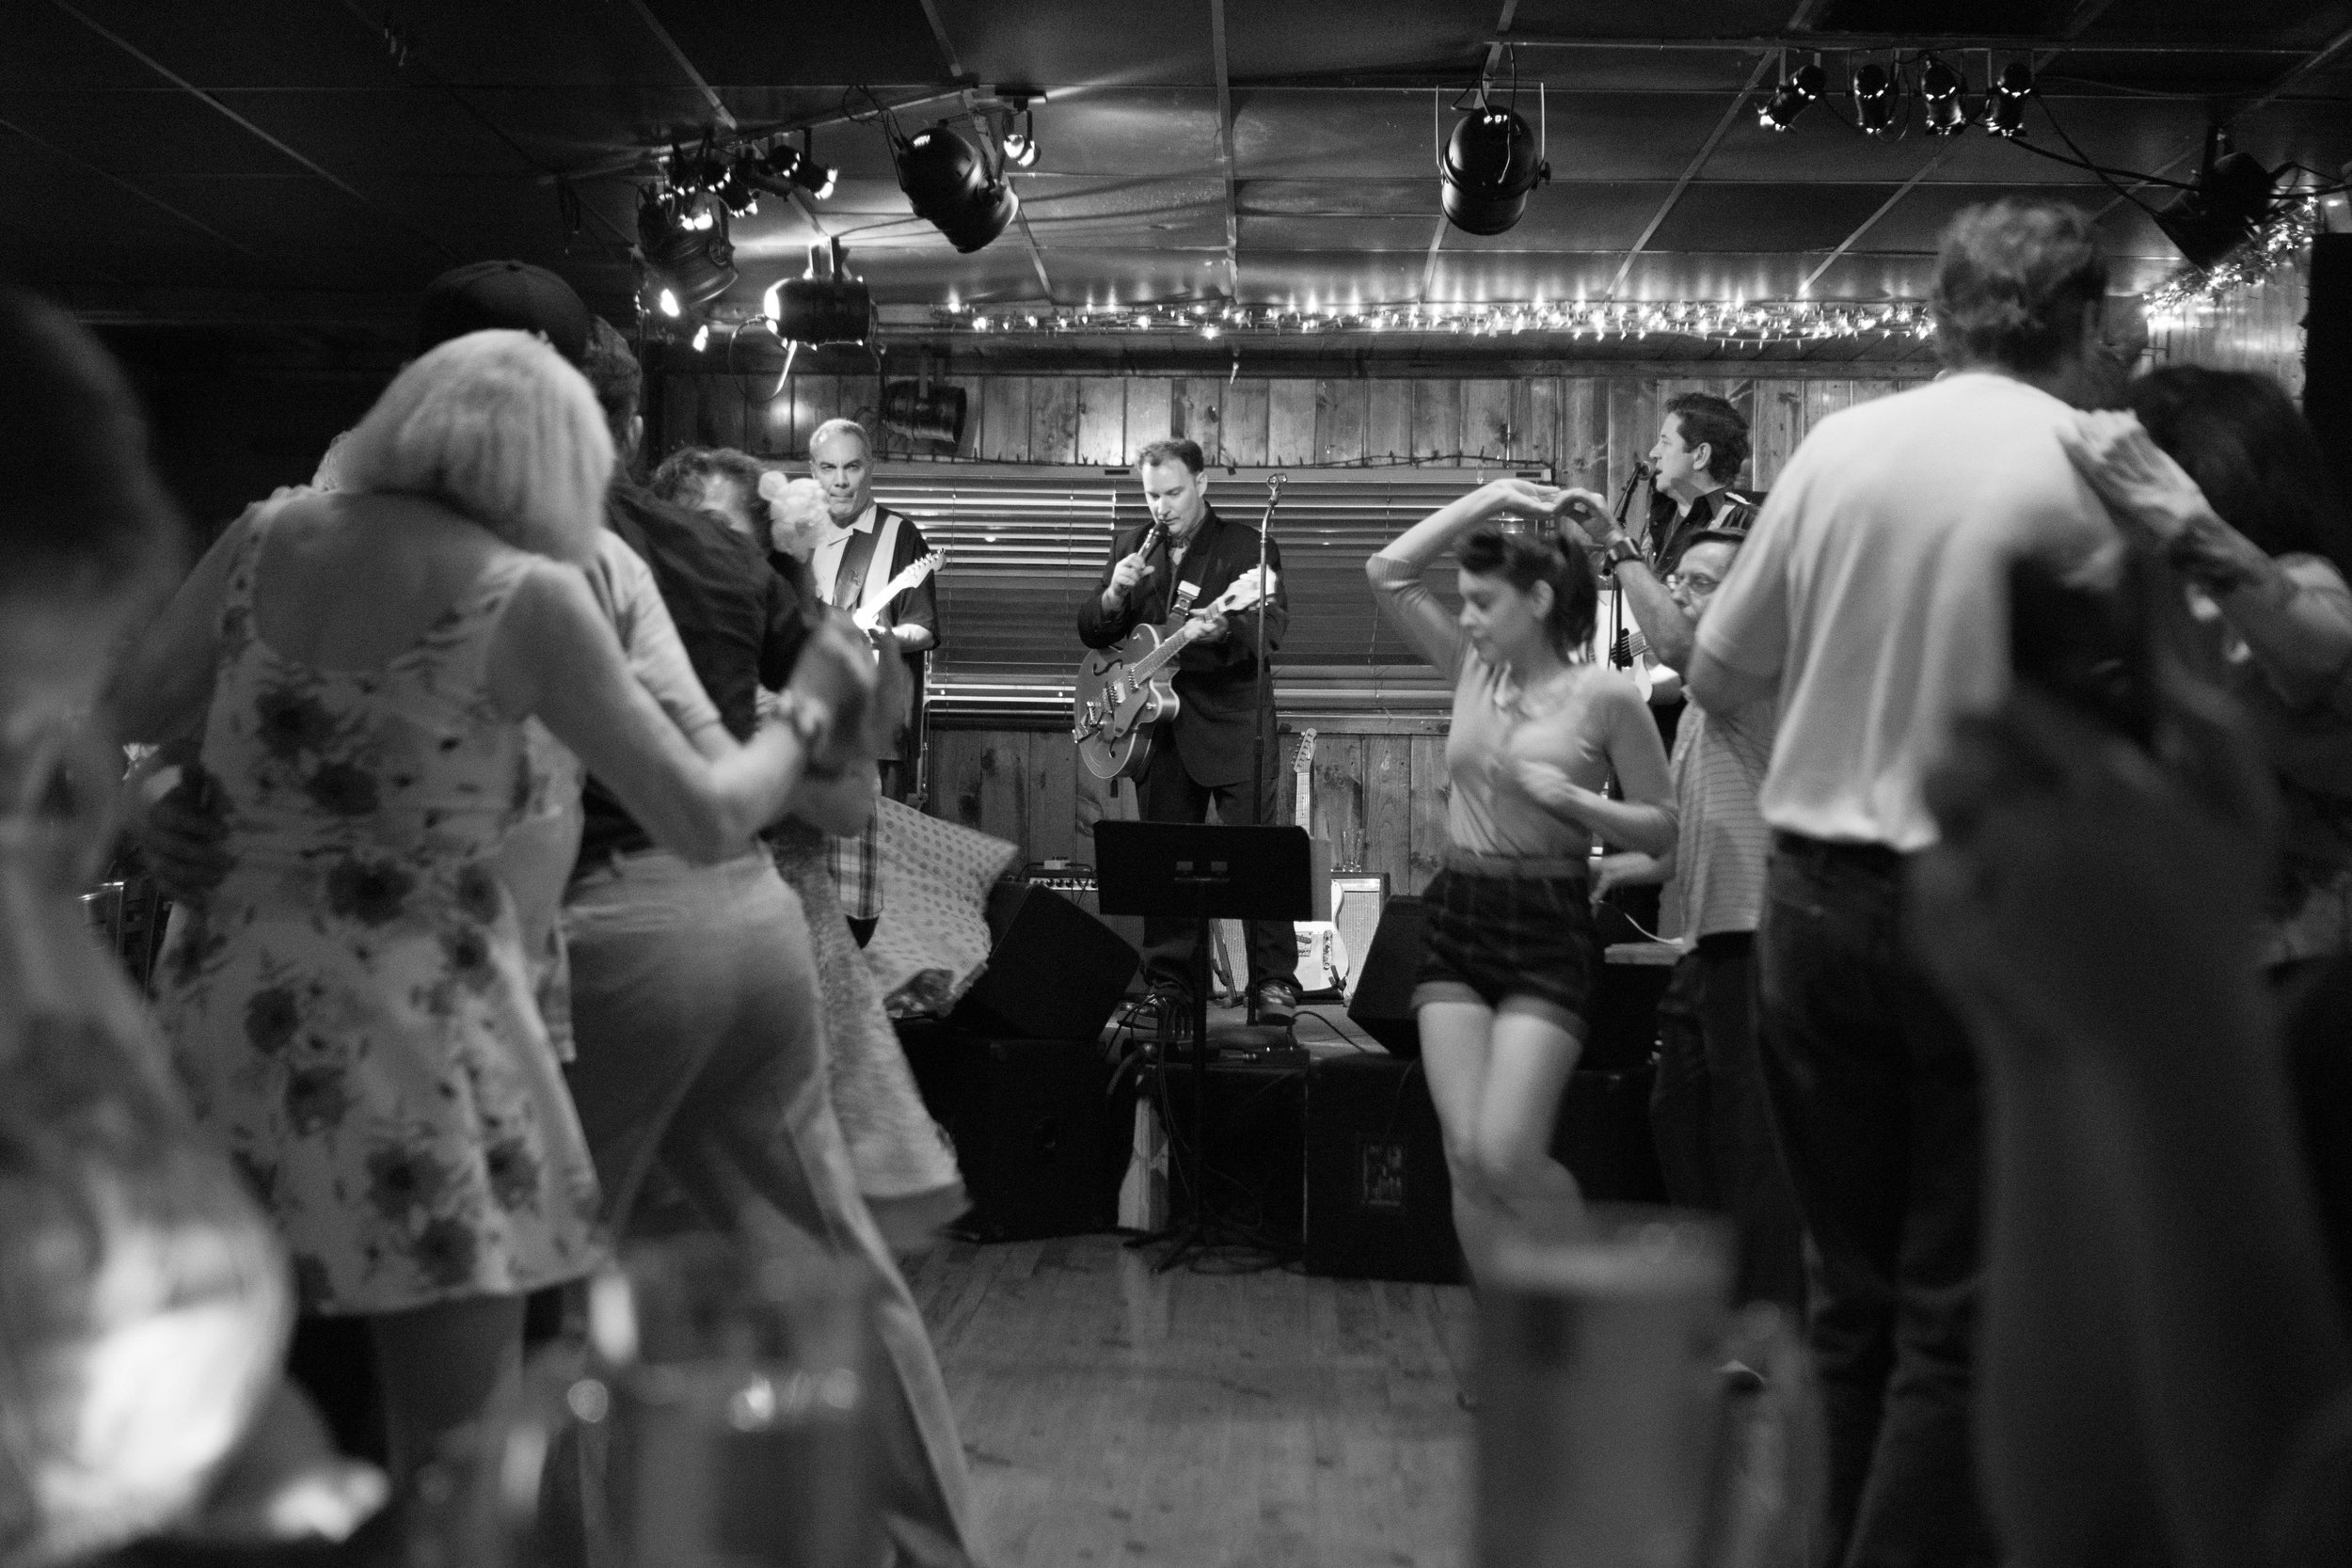 It's all Jazz - I shot this in a swing dance bar somewhere in L.A.